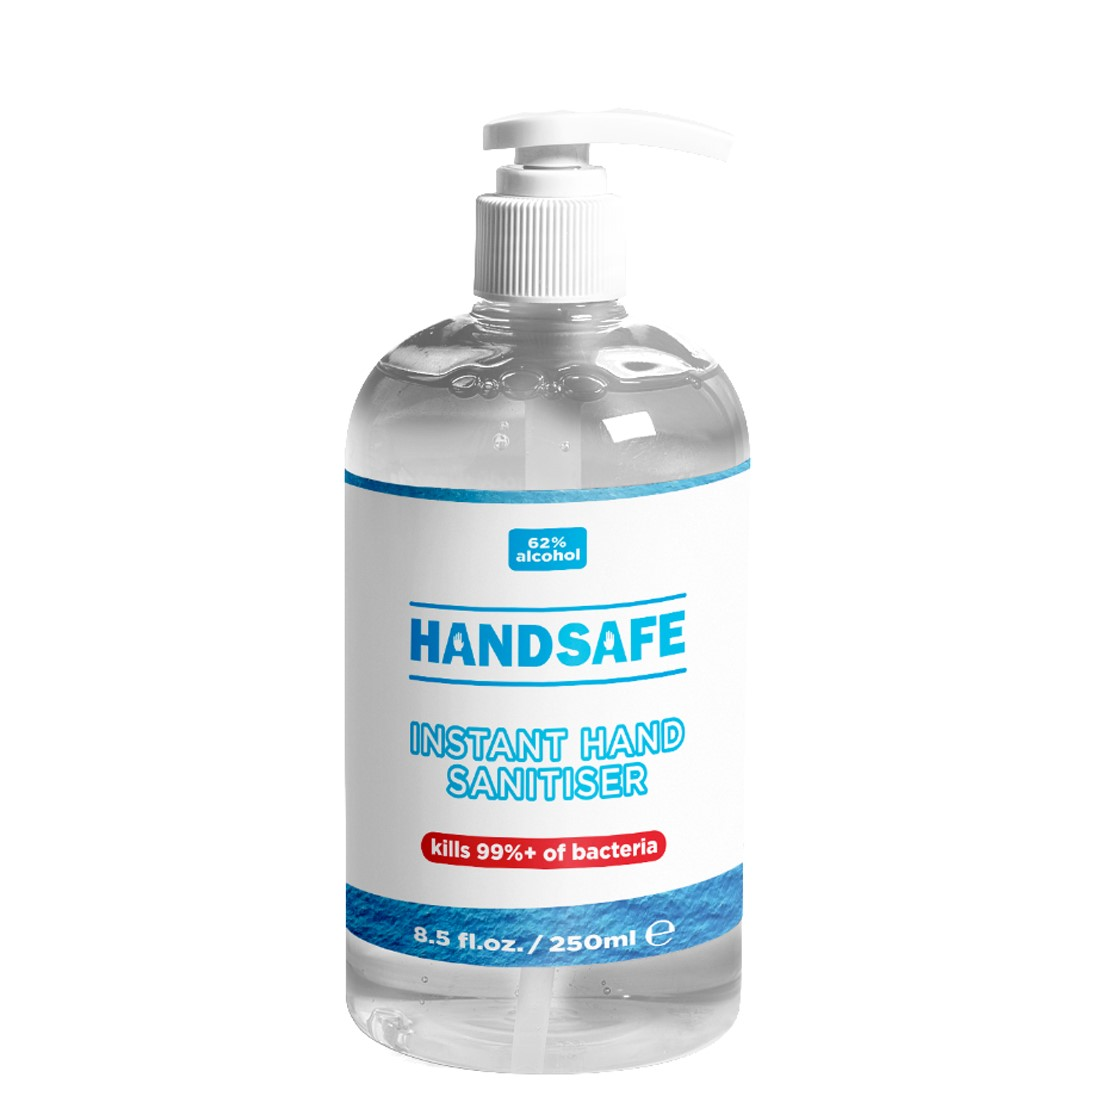 637287030936877421_hand-sanitiser-uk-62pc_250ml_web.jpg